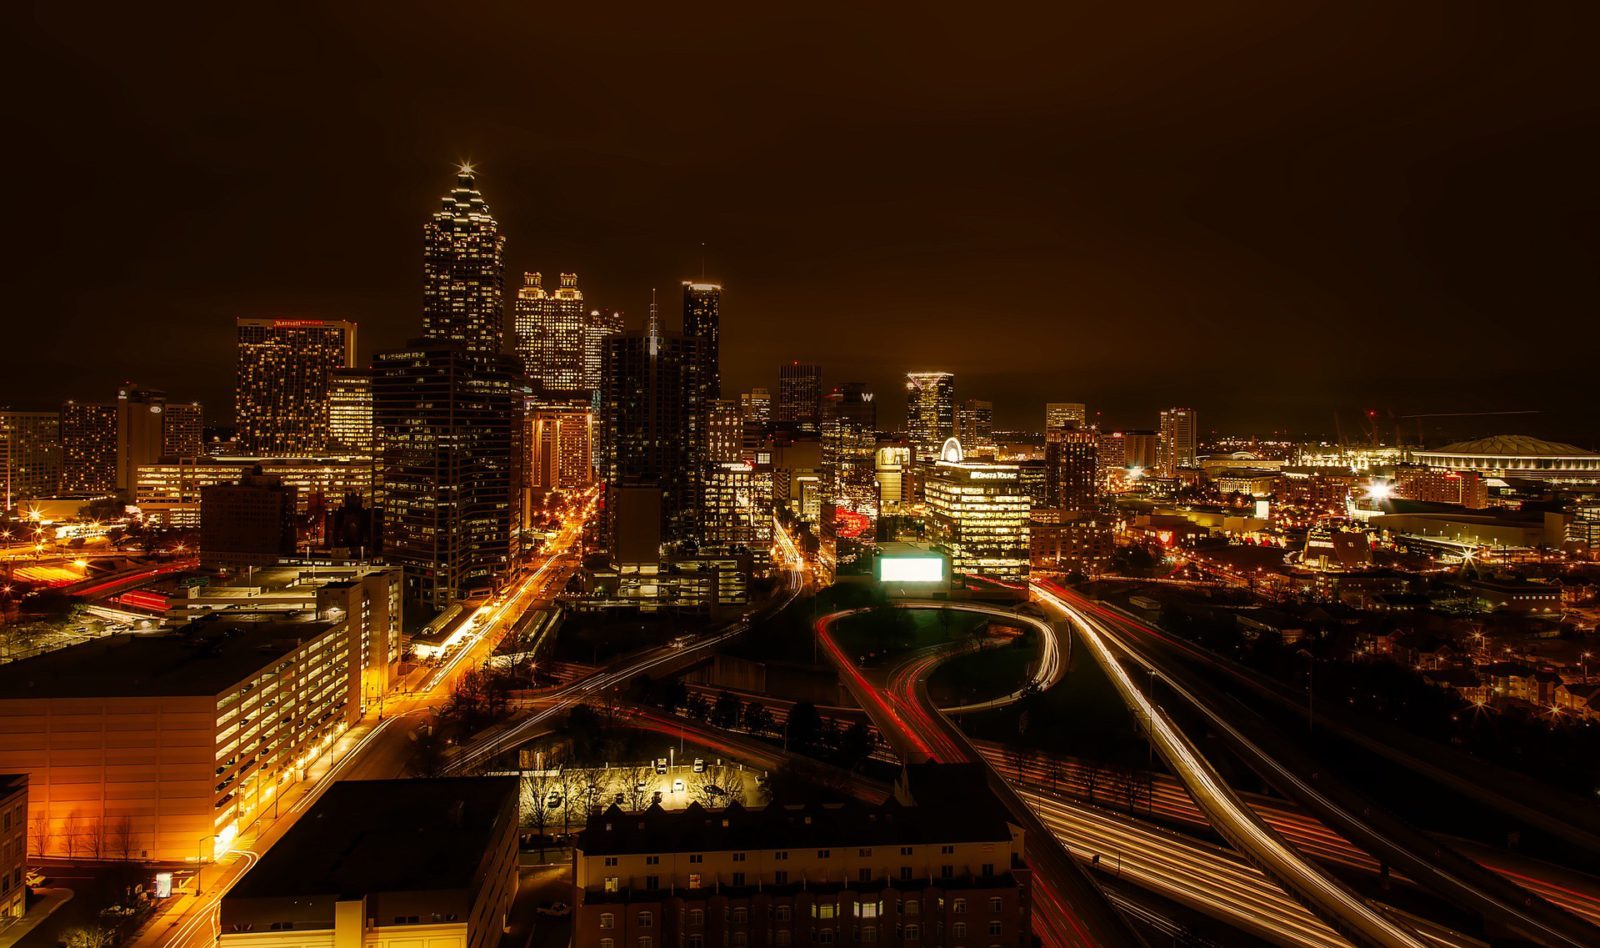 Hotel Deal For Atlanta Georgia #atlantageorgia